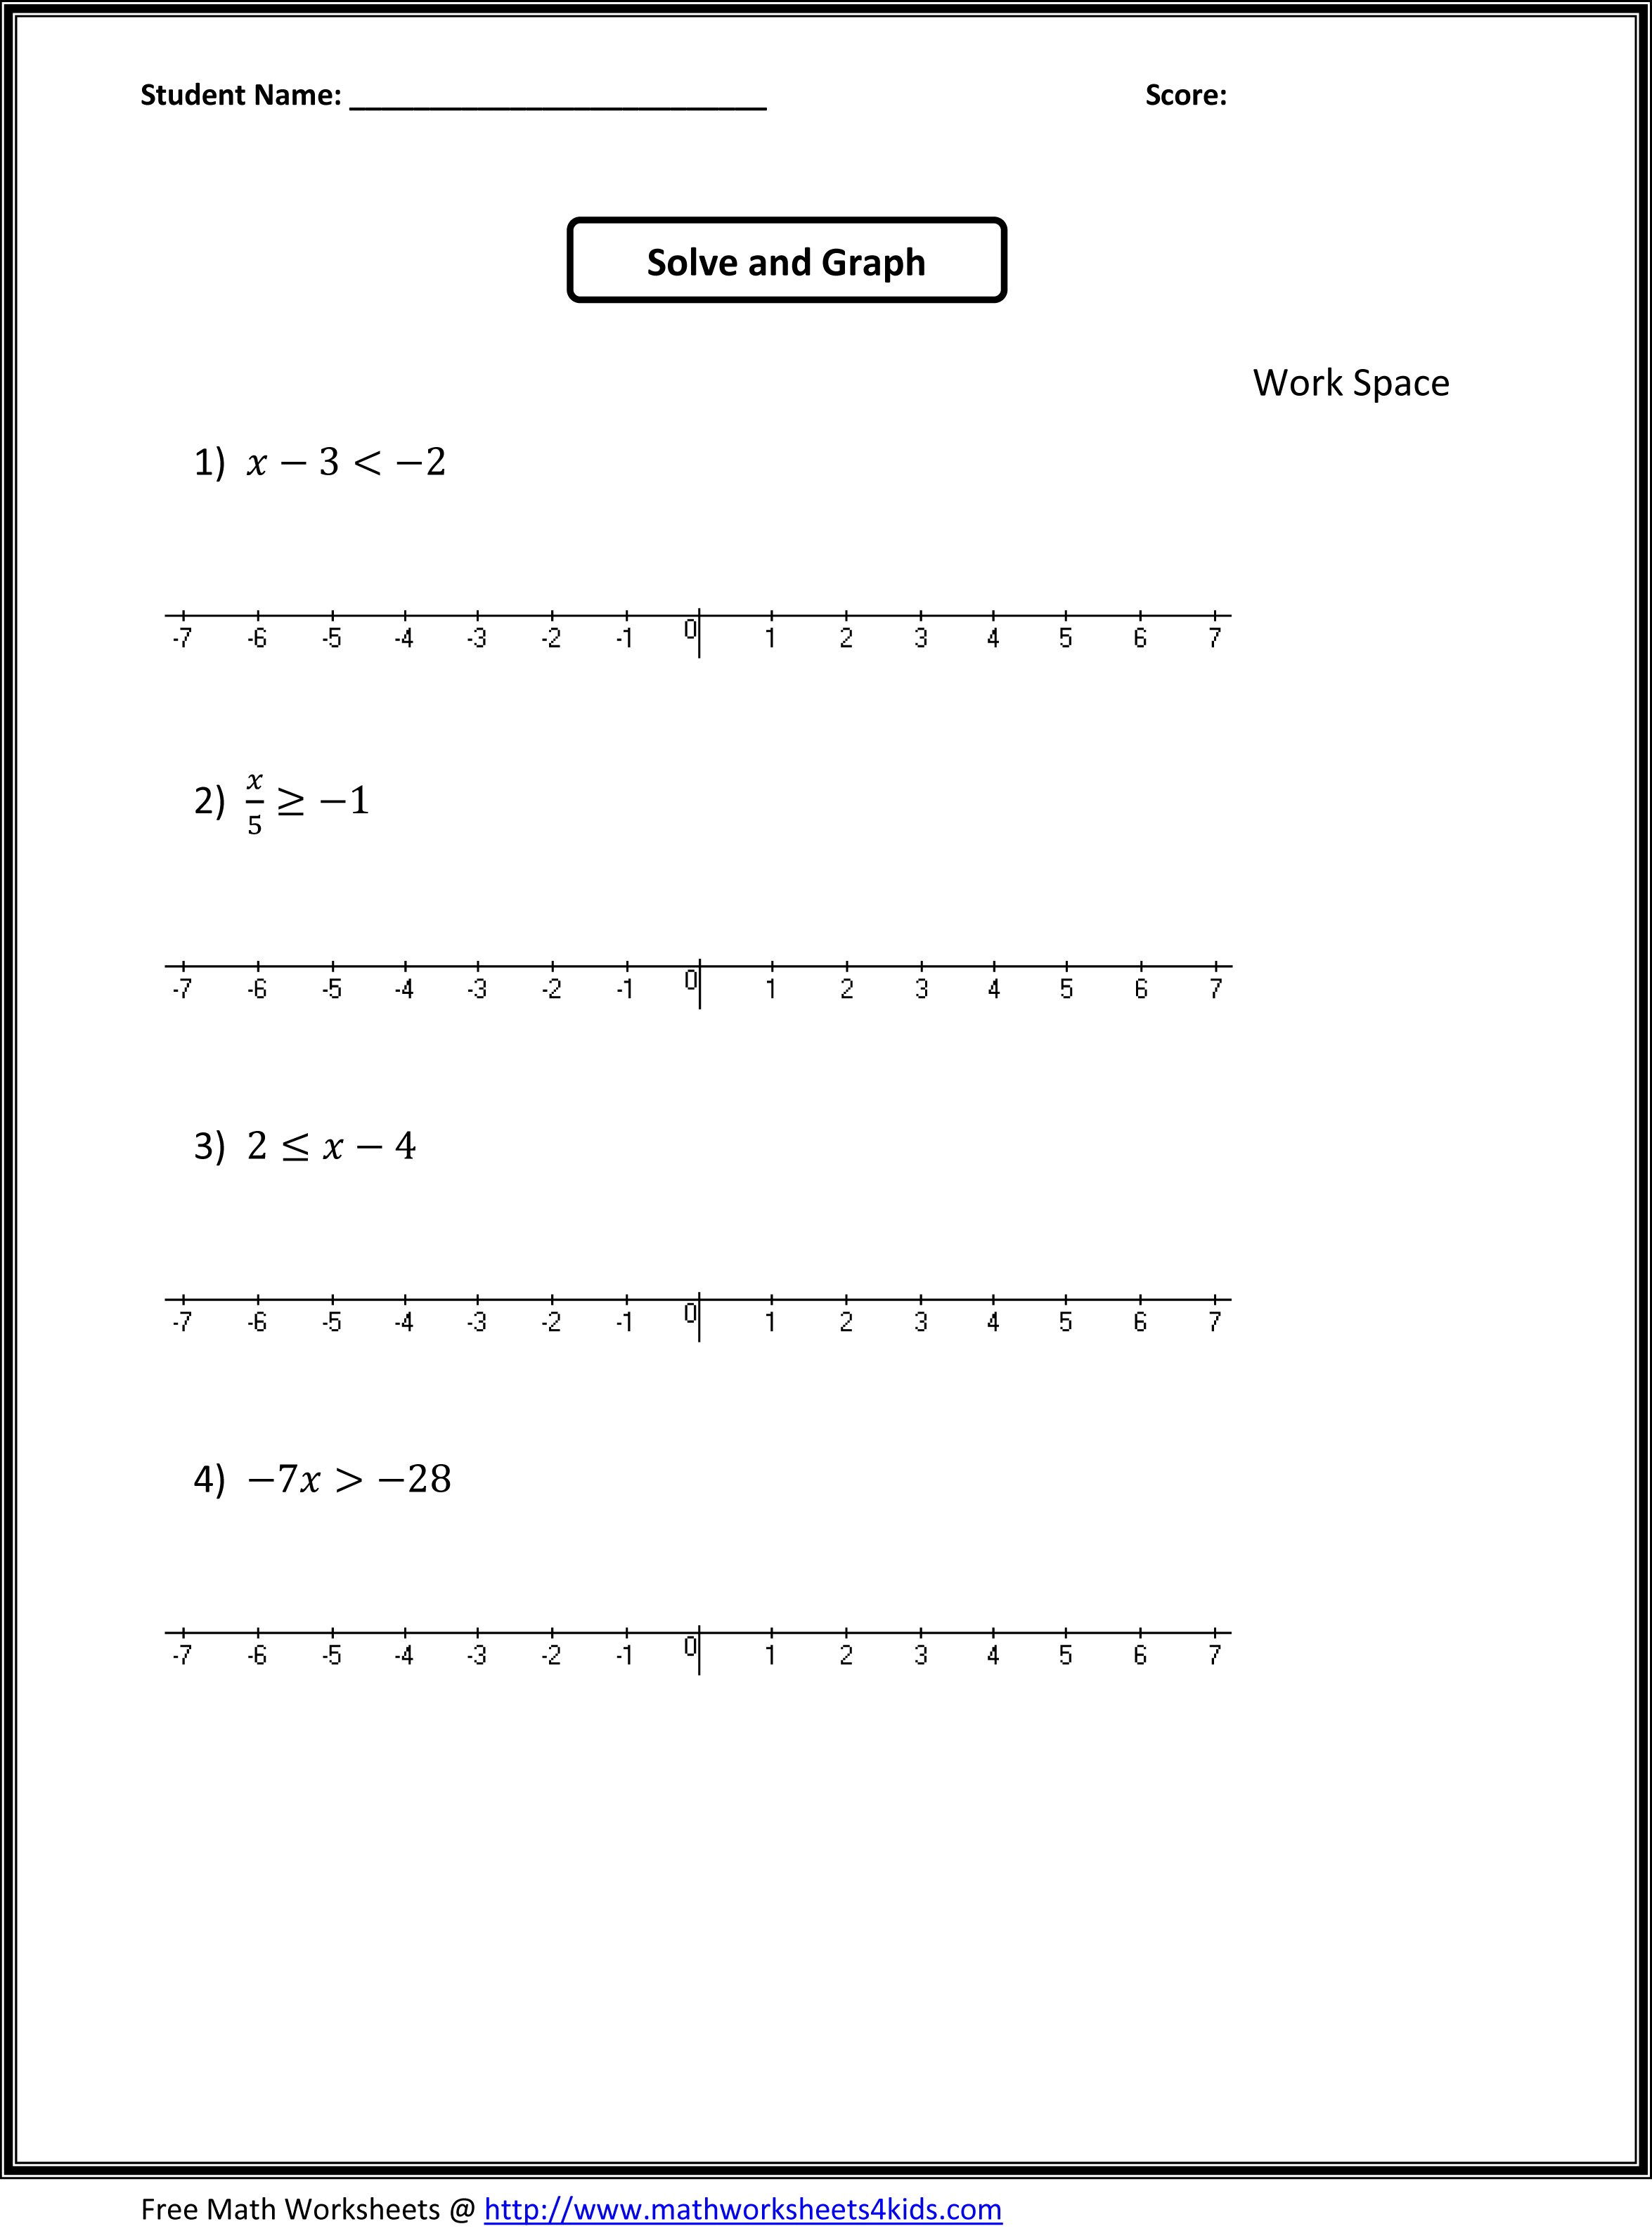 10 Best Images Of 7th Grade Math Worksheets With Answer Key